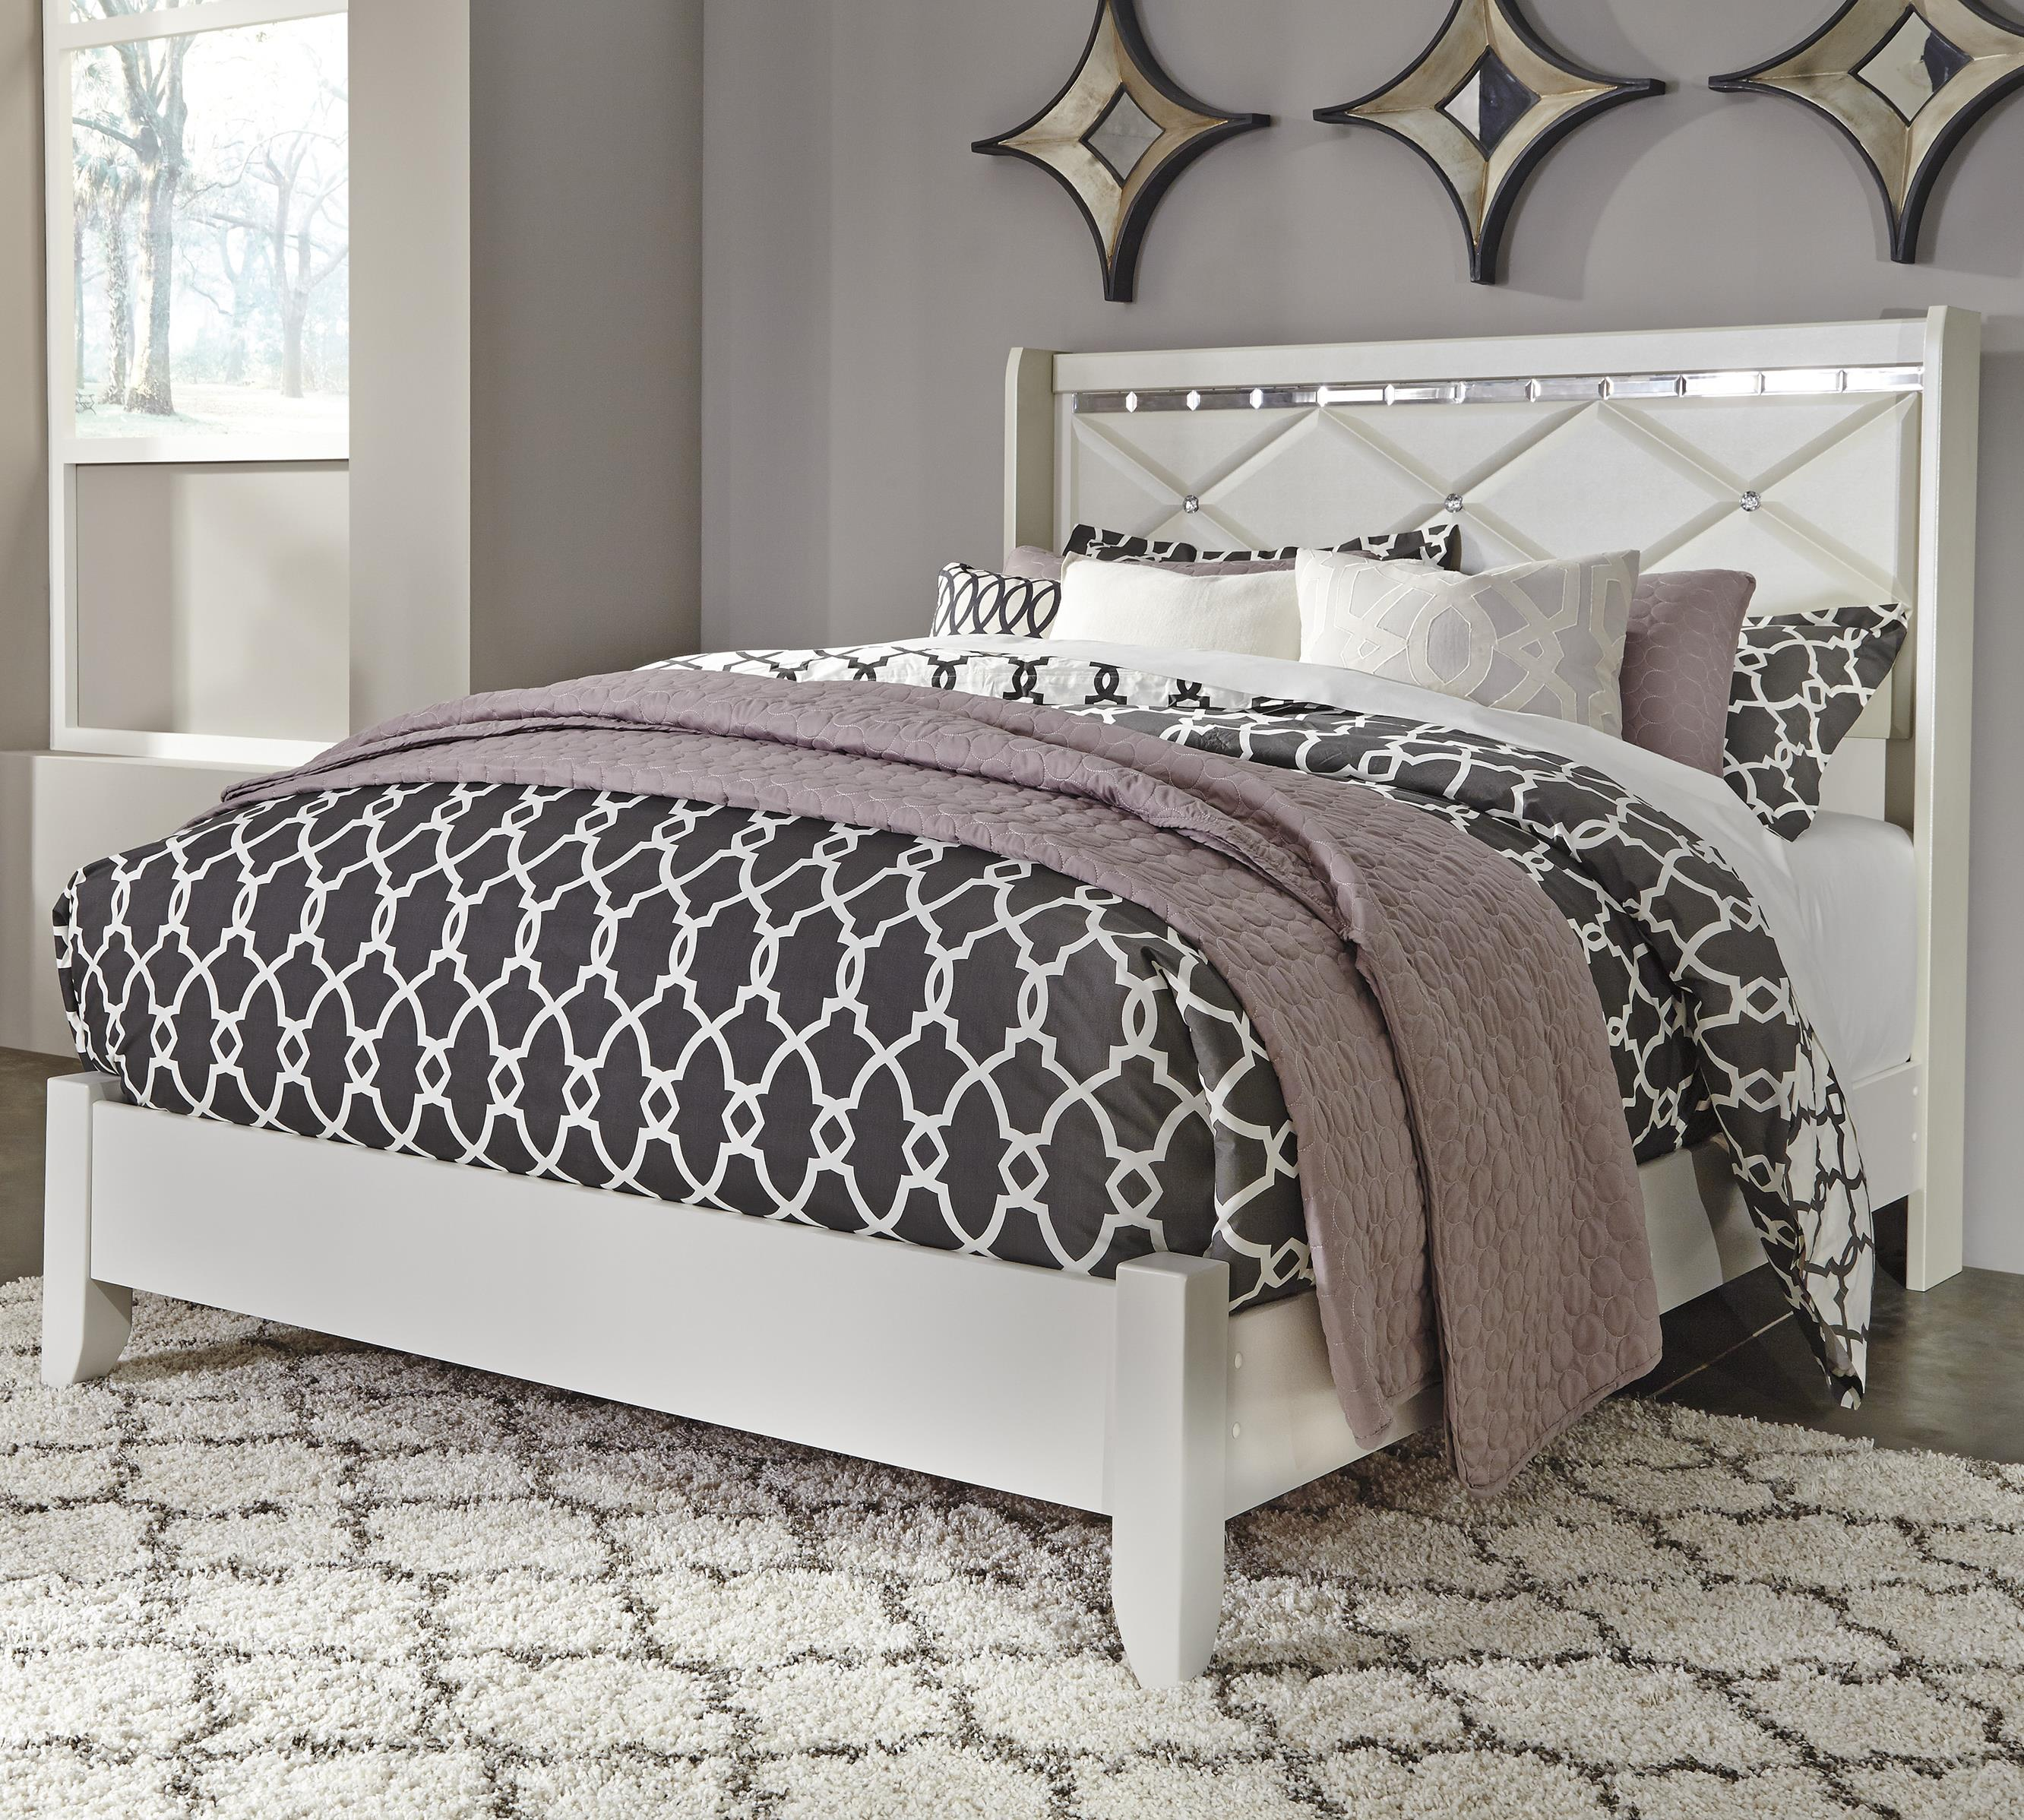 Signature Design By Ashley Dreamur Queen Panel Bed With Faux Crystals Royal Furniture